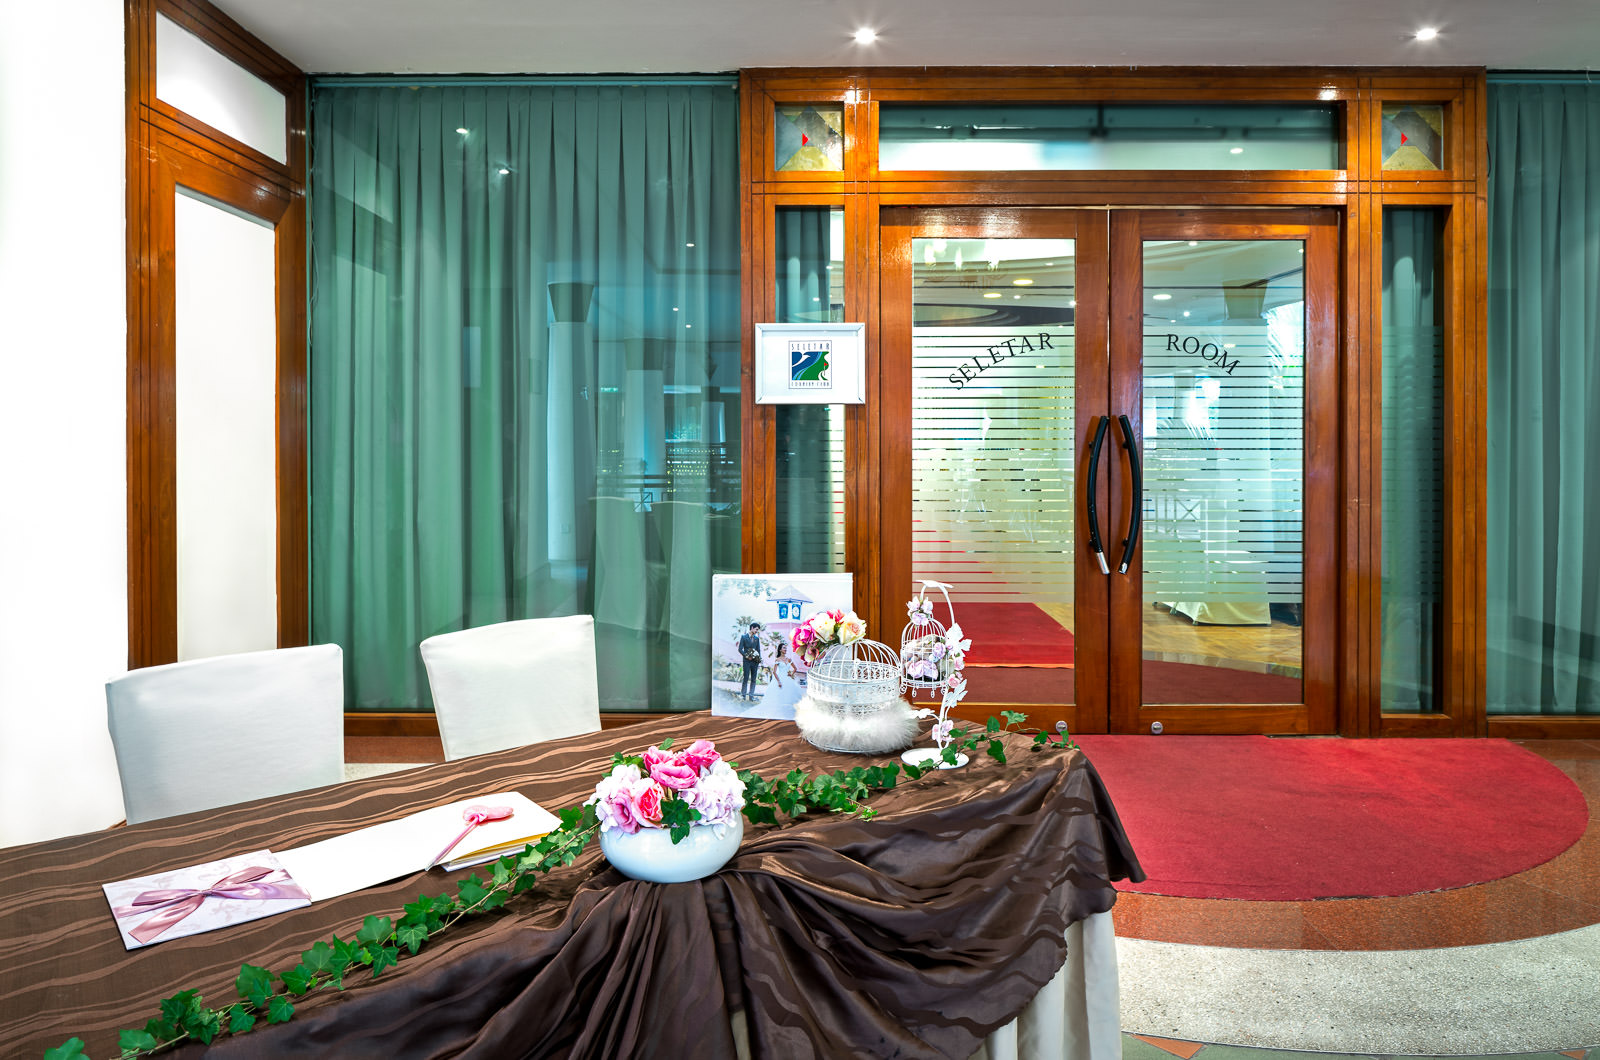 Interior photography of the seletar country club in singapore showing the entrance to the seletar ballroom for a wedding